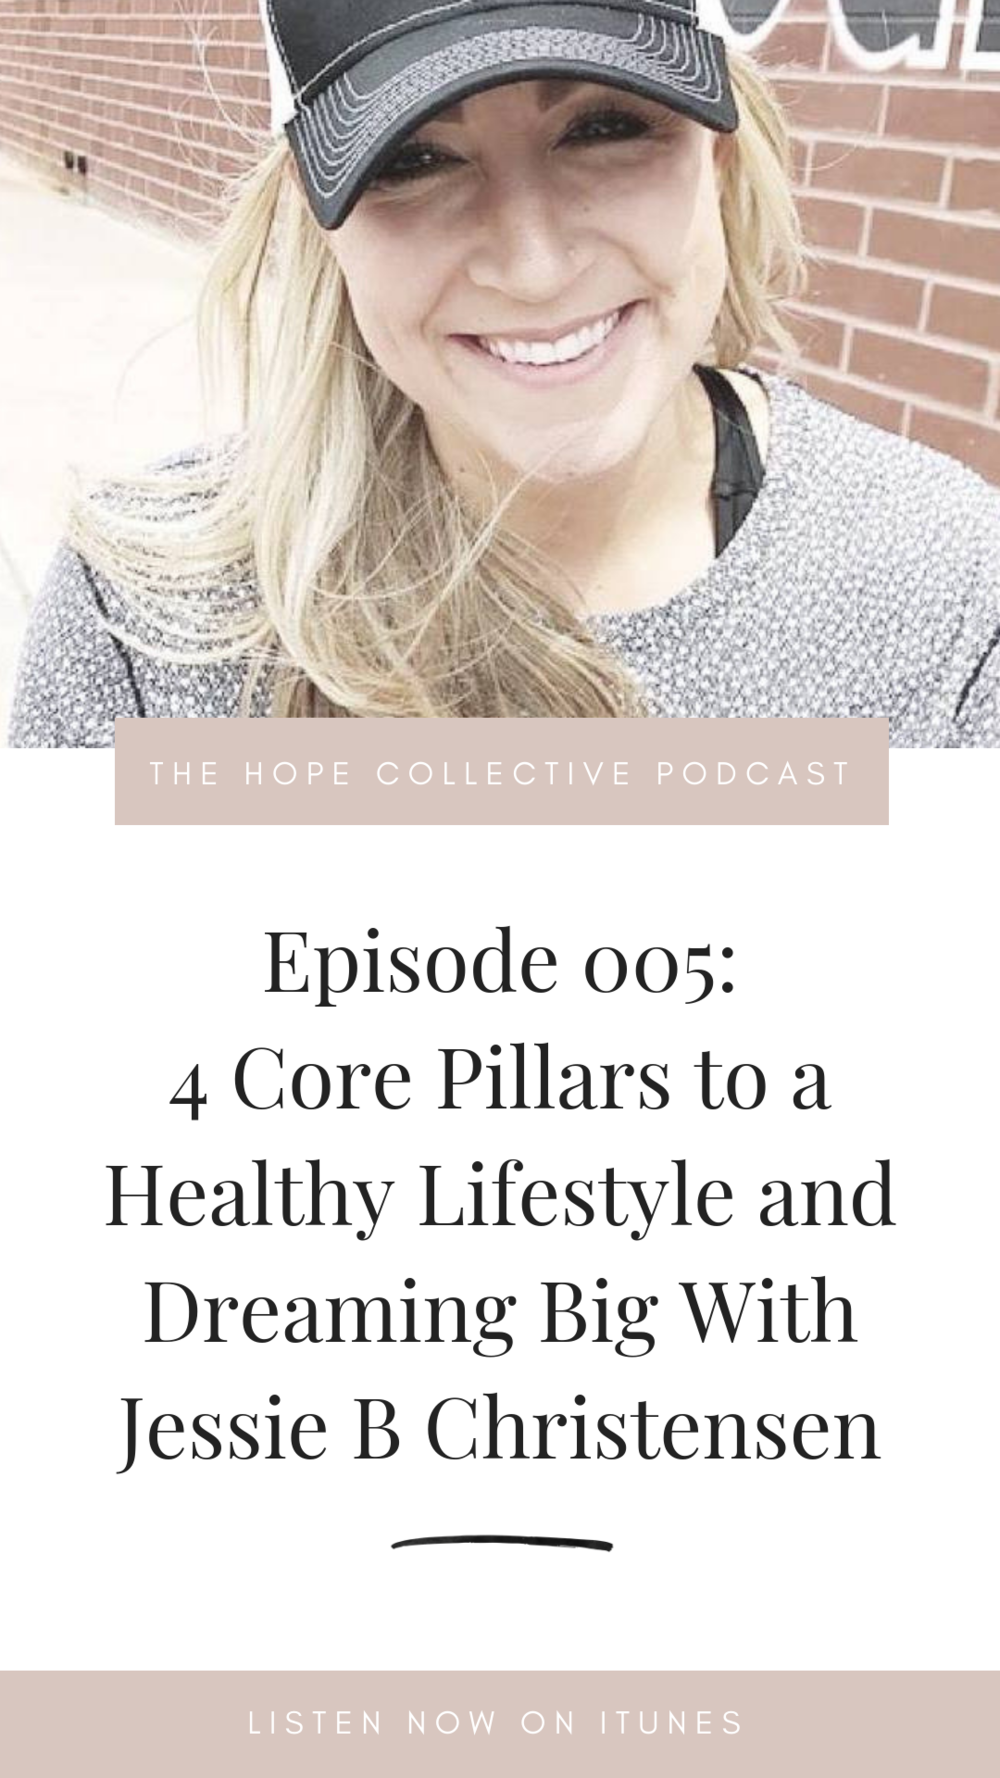 JESSIE B CHRISTENSEN - HEALTHY LIFESTYLE AND DREAMING BIG - THE HOPE COLLECTIVE PODCAST